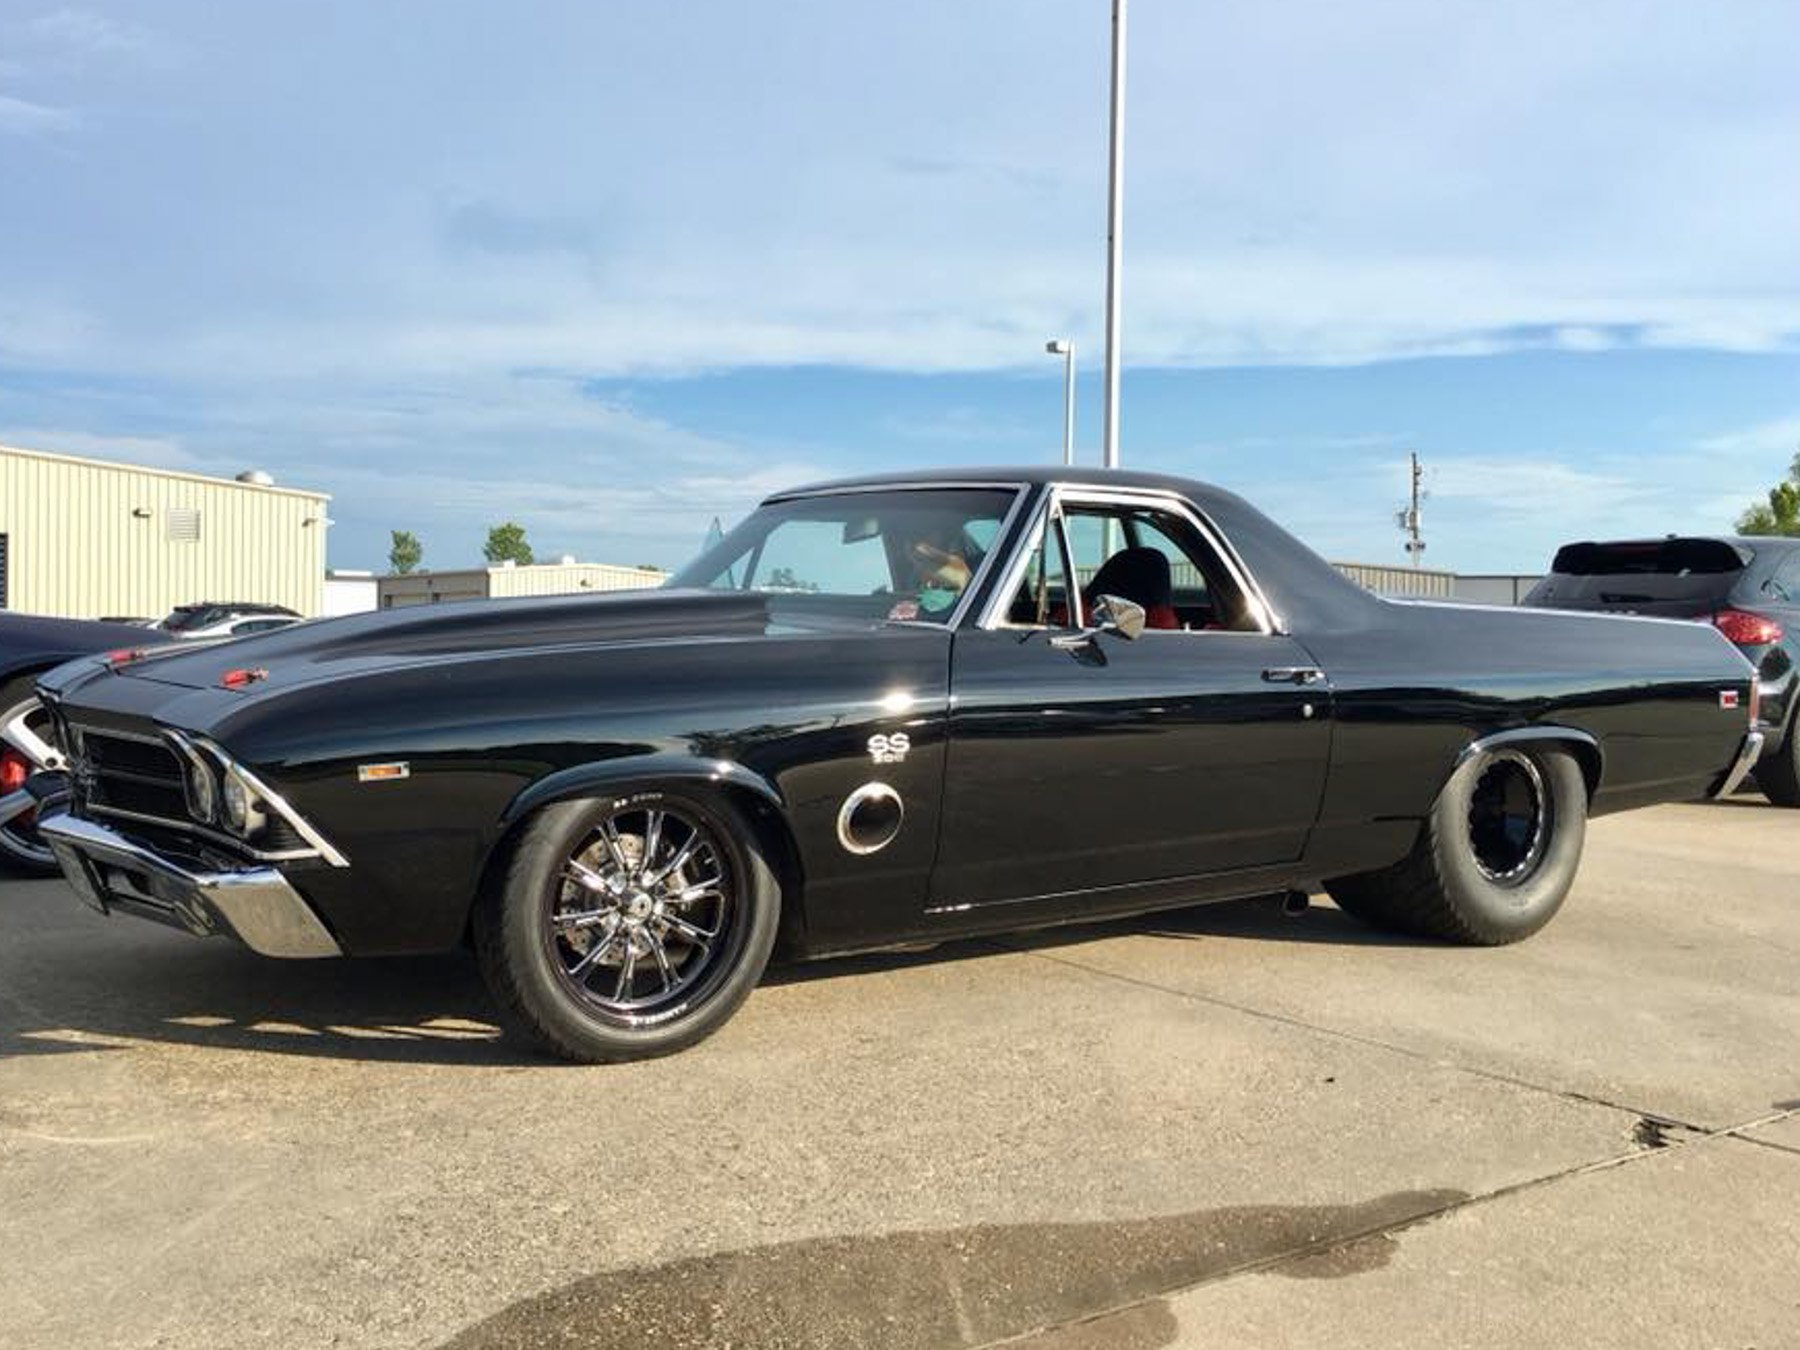 Hauling Horsepower Mike Alleman S 9 Second 1969 El Camino Ss